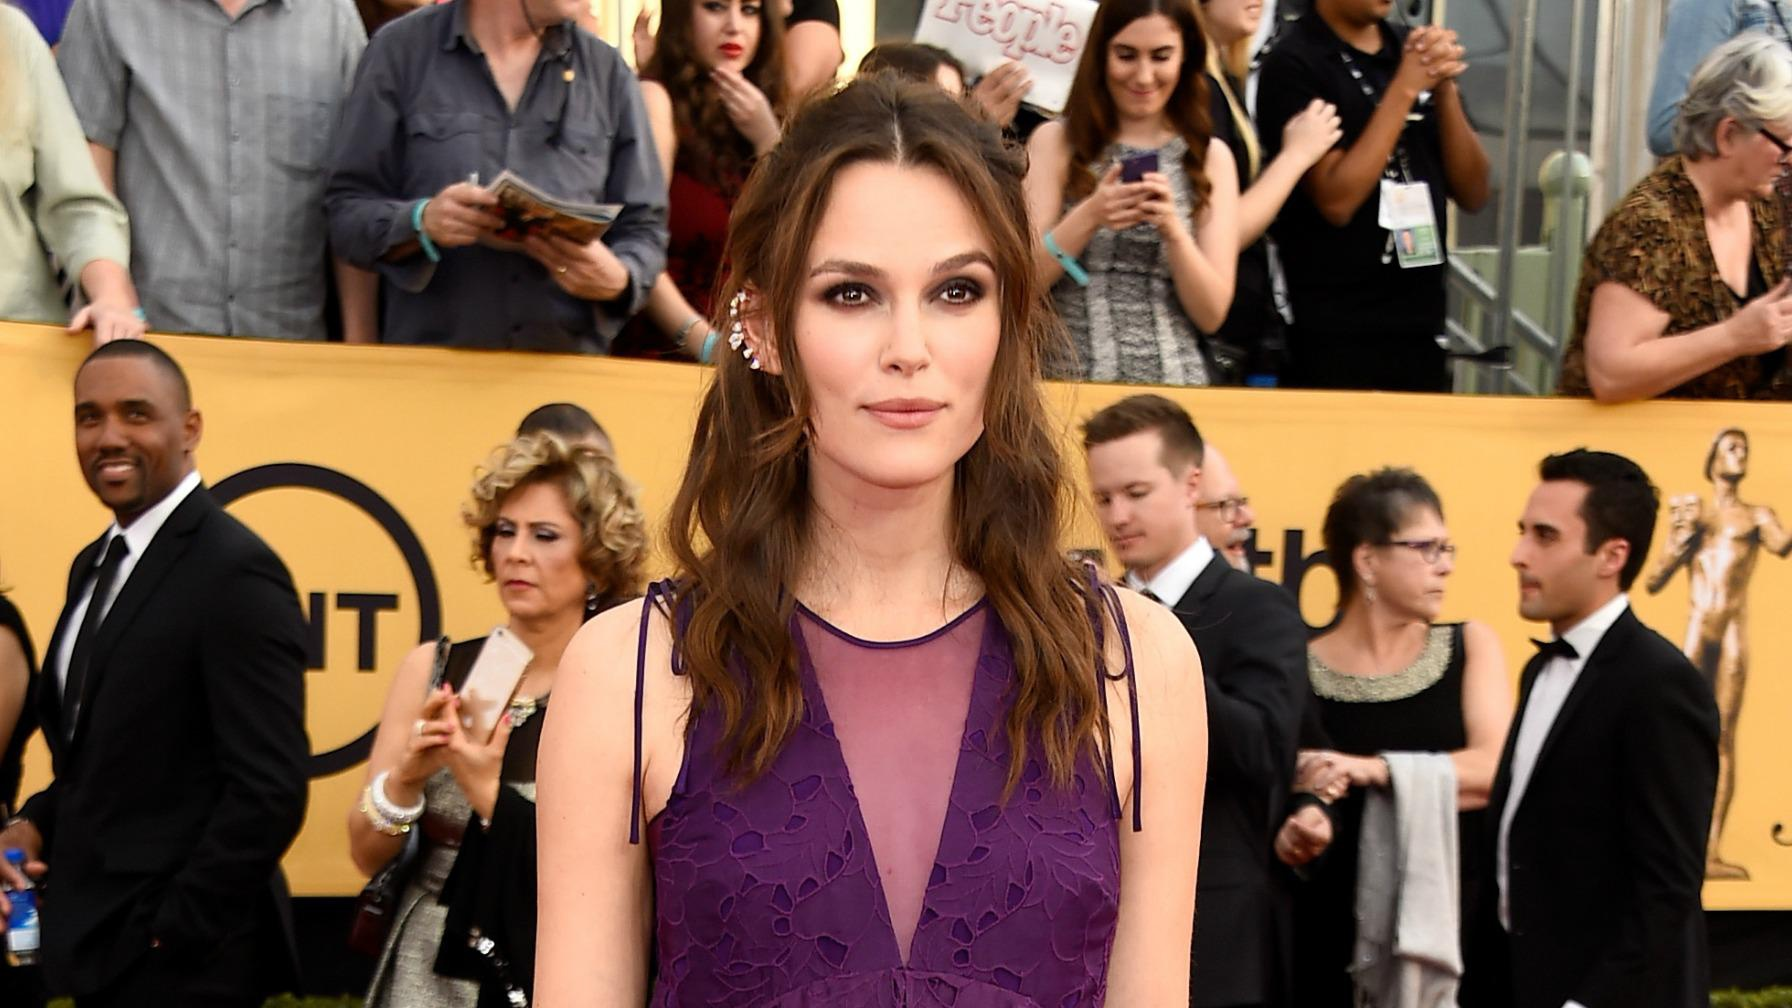 A pregnant Keira Knightley totally rocks the SAG Awards red carpet